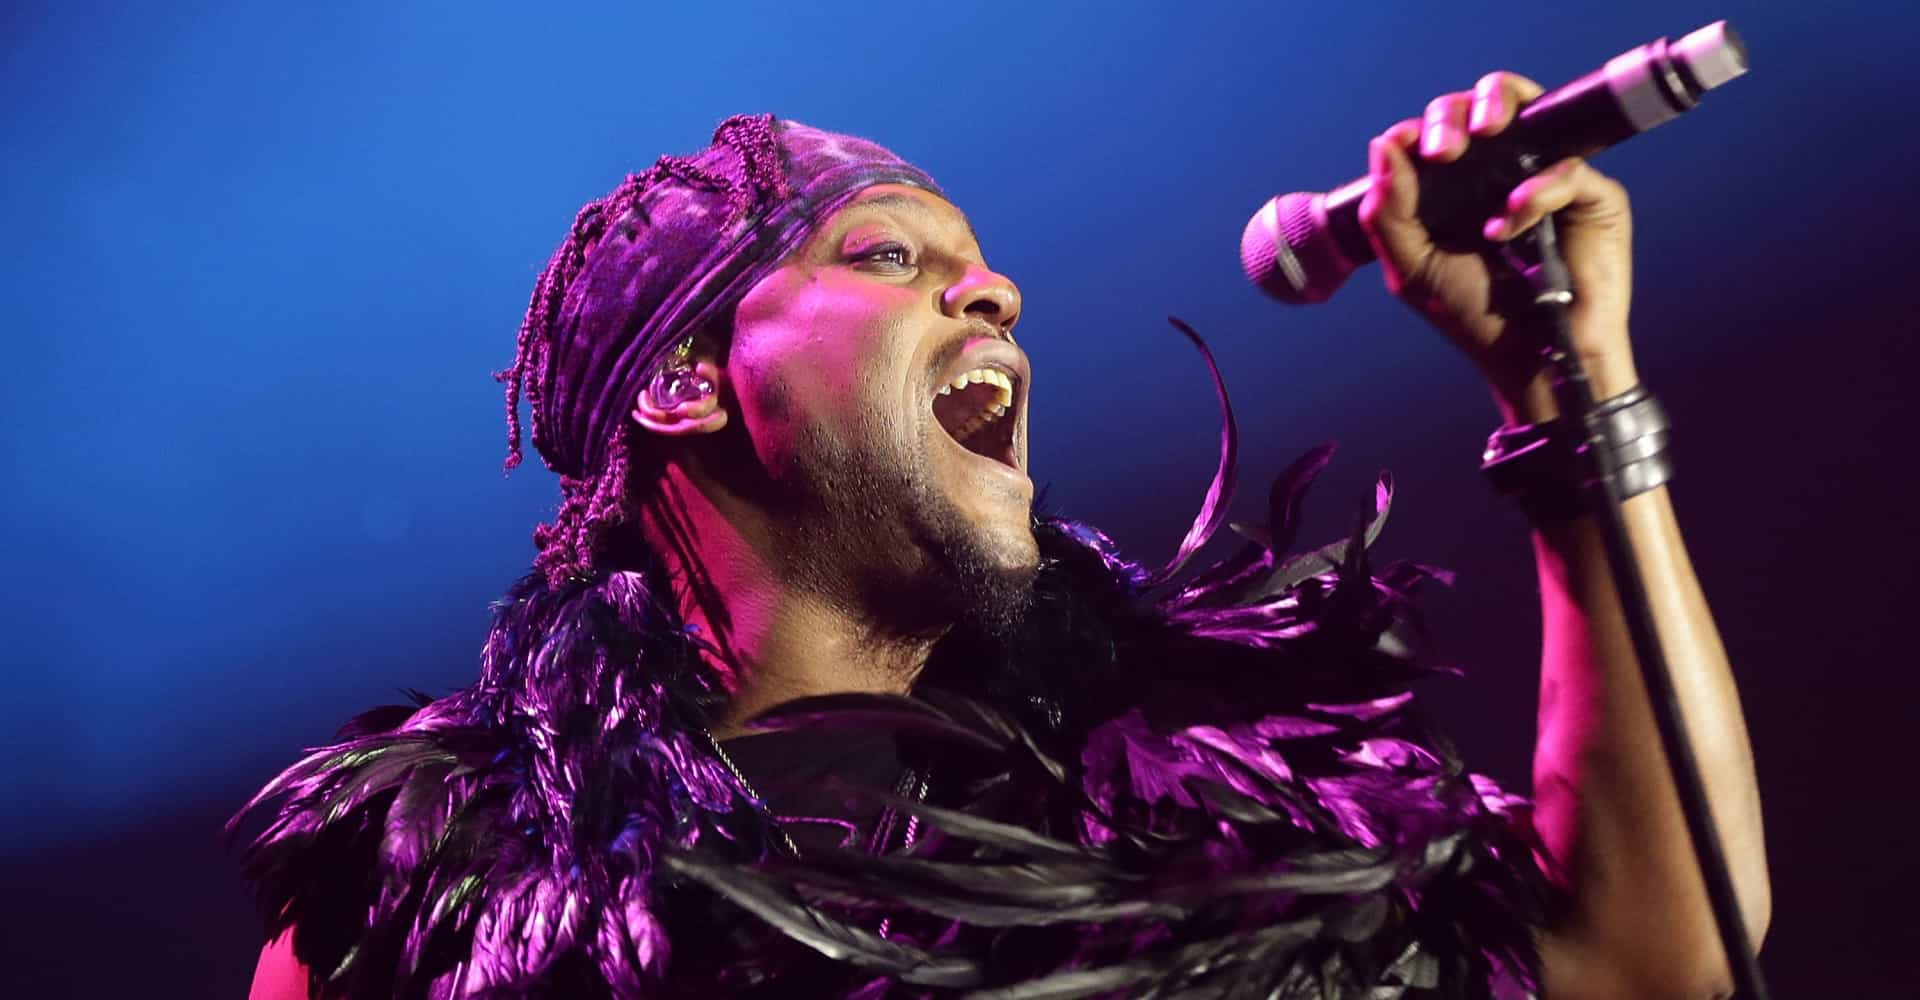 D'Angelo calls off rare UK show to work on new album